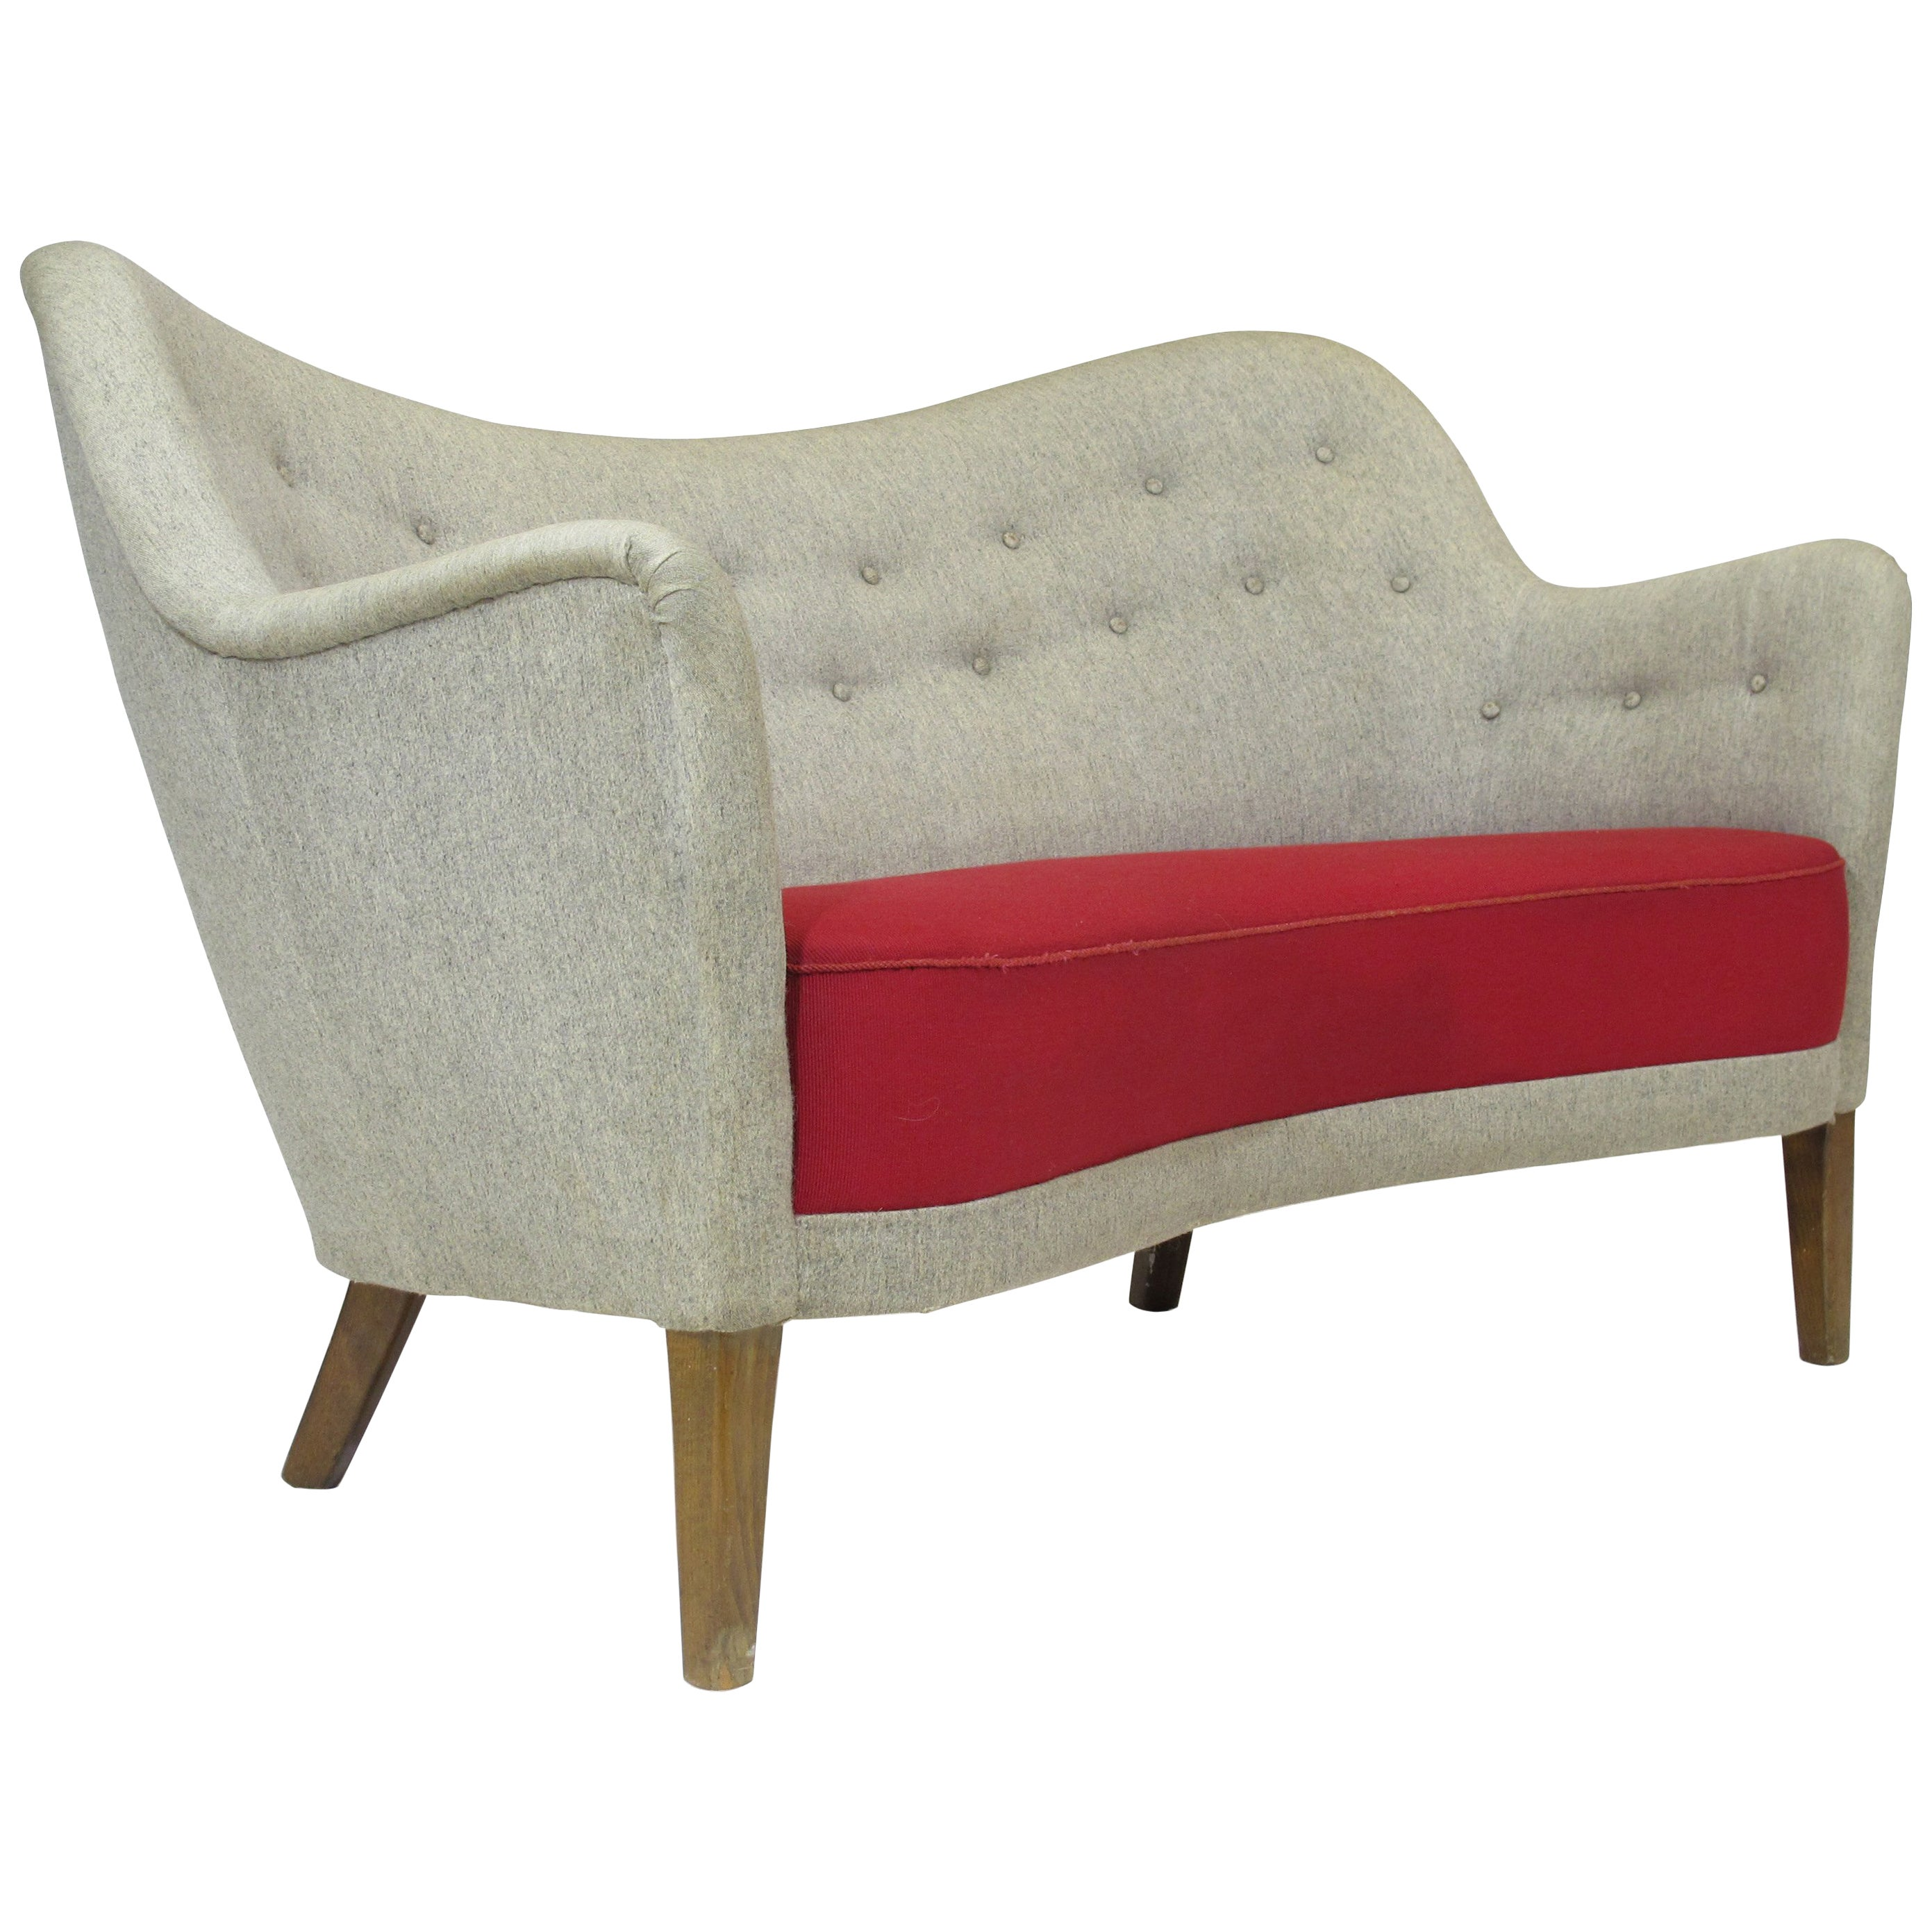 Late 1940s Danish Settee in Manner of Finn Juhl Settee by Carl Brorup